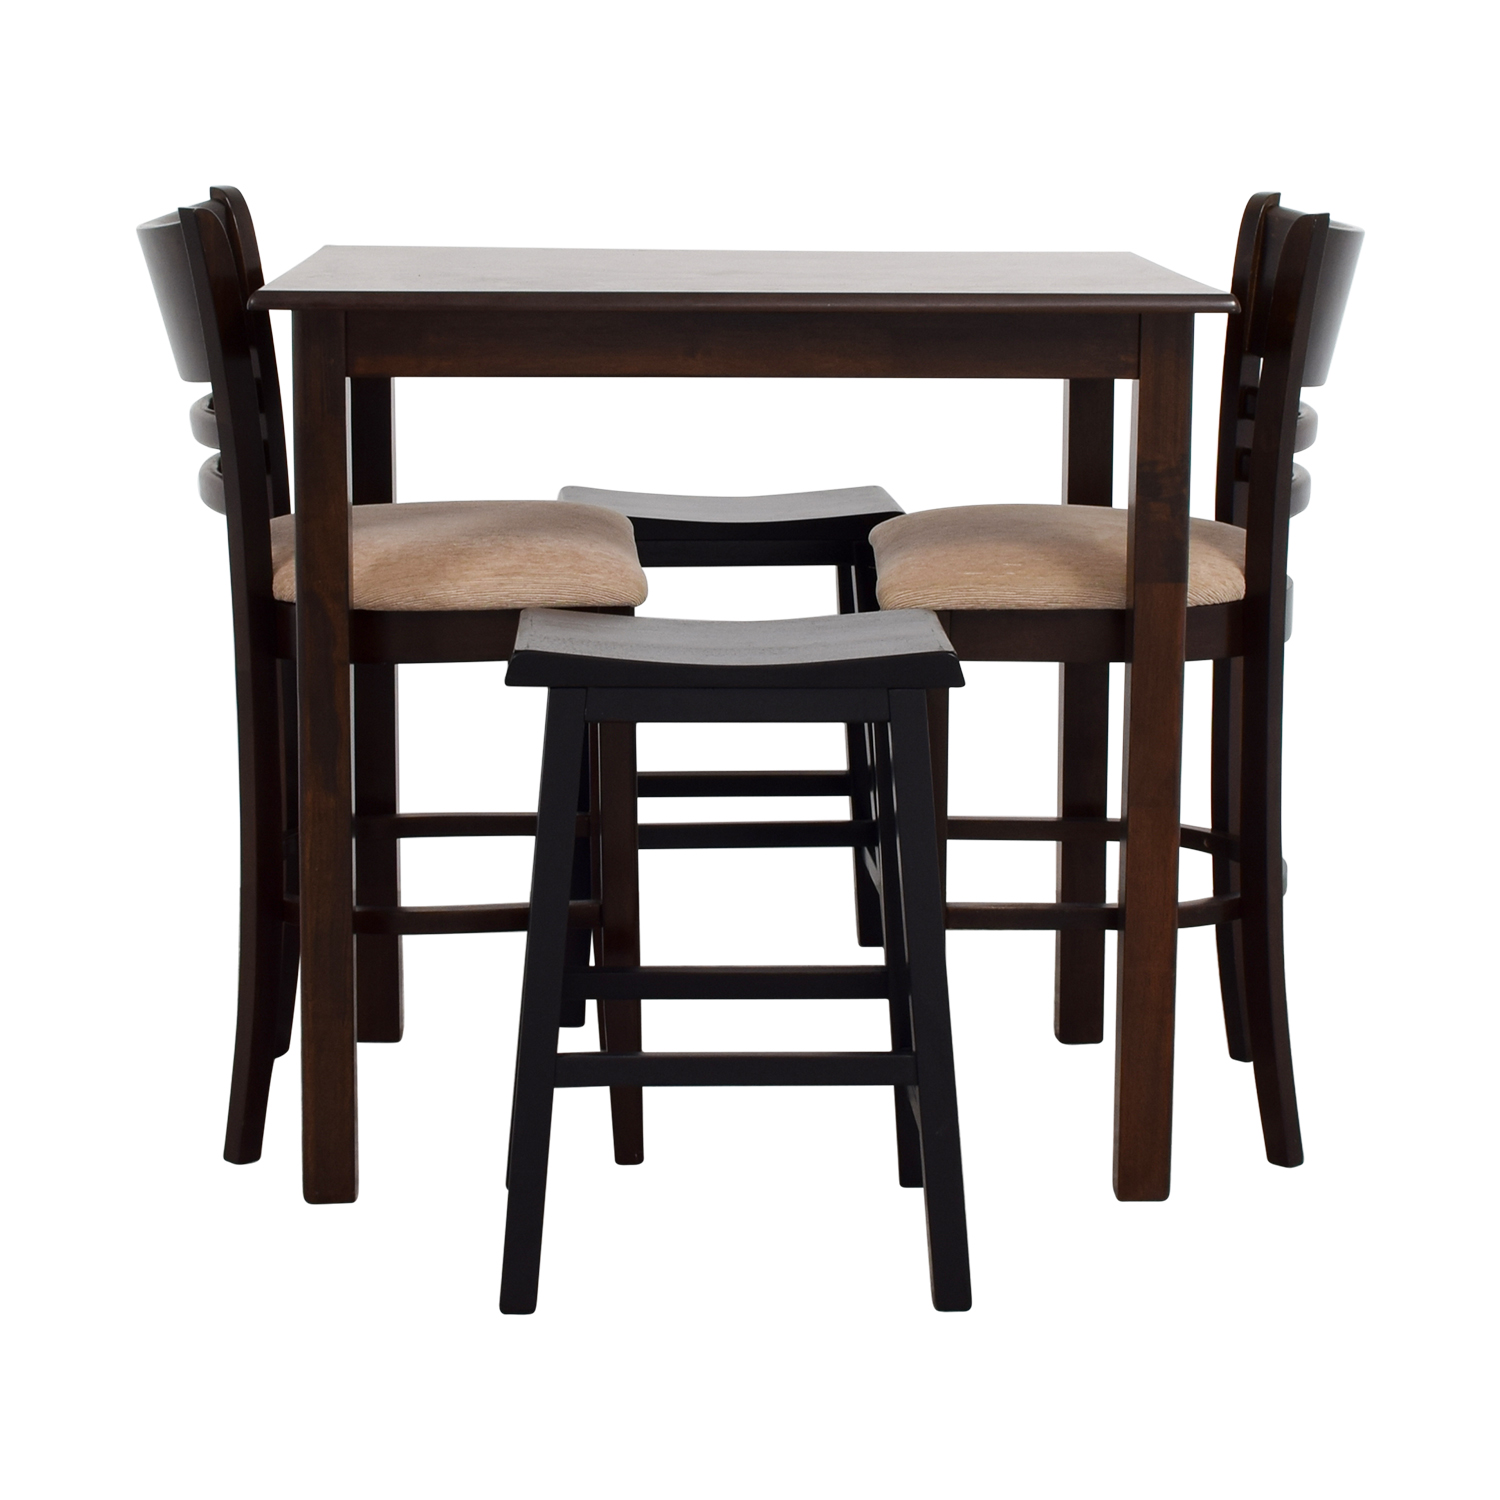 Simple Bar Table with Two Chairs and Two Stools dimensions